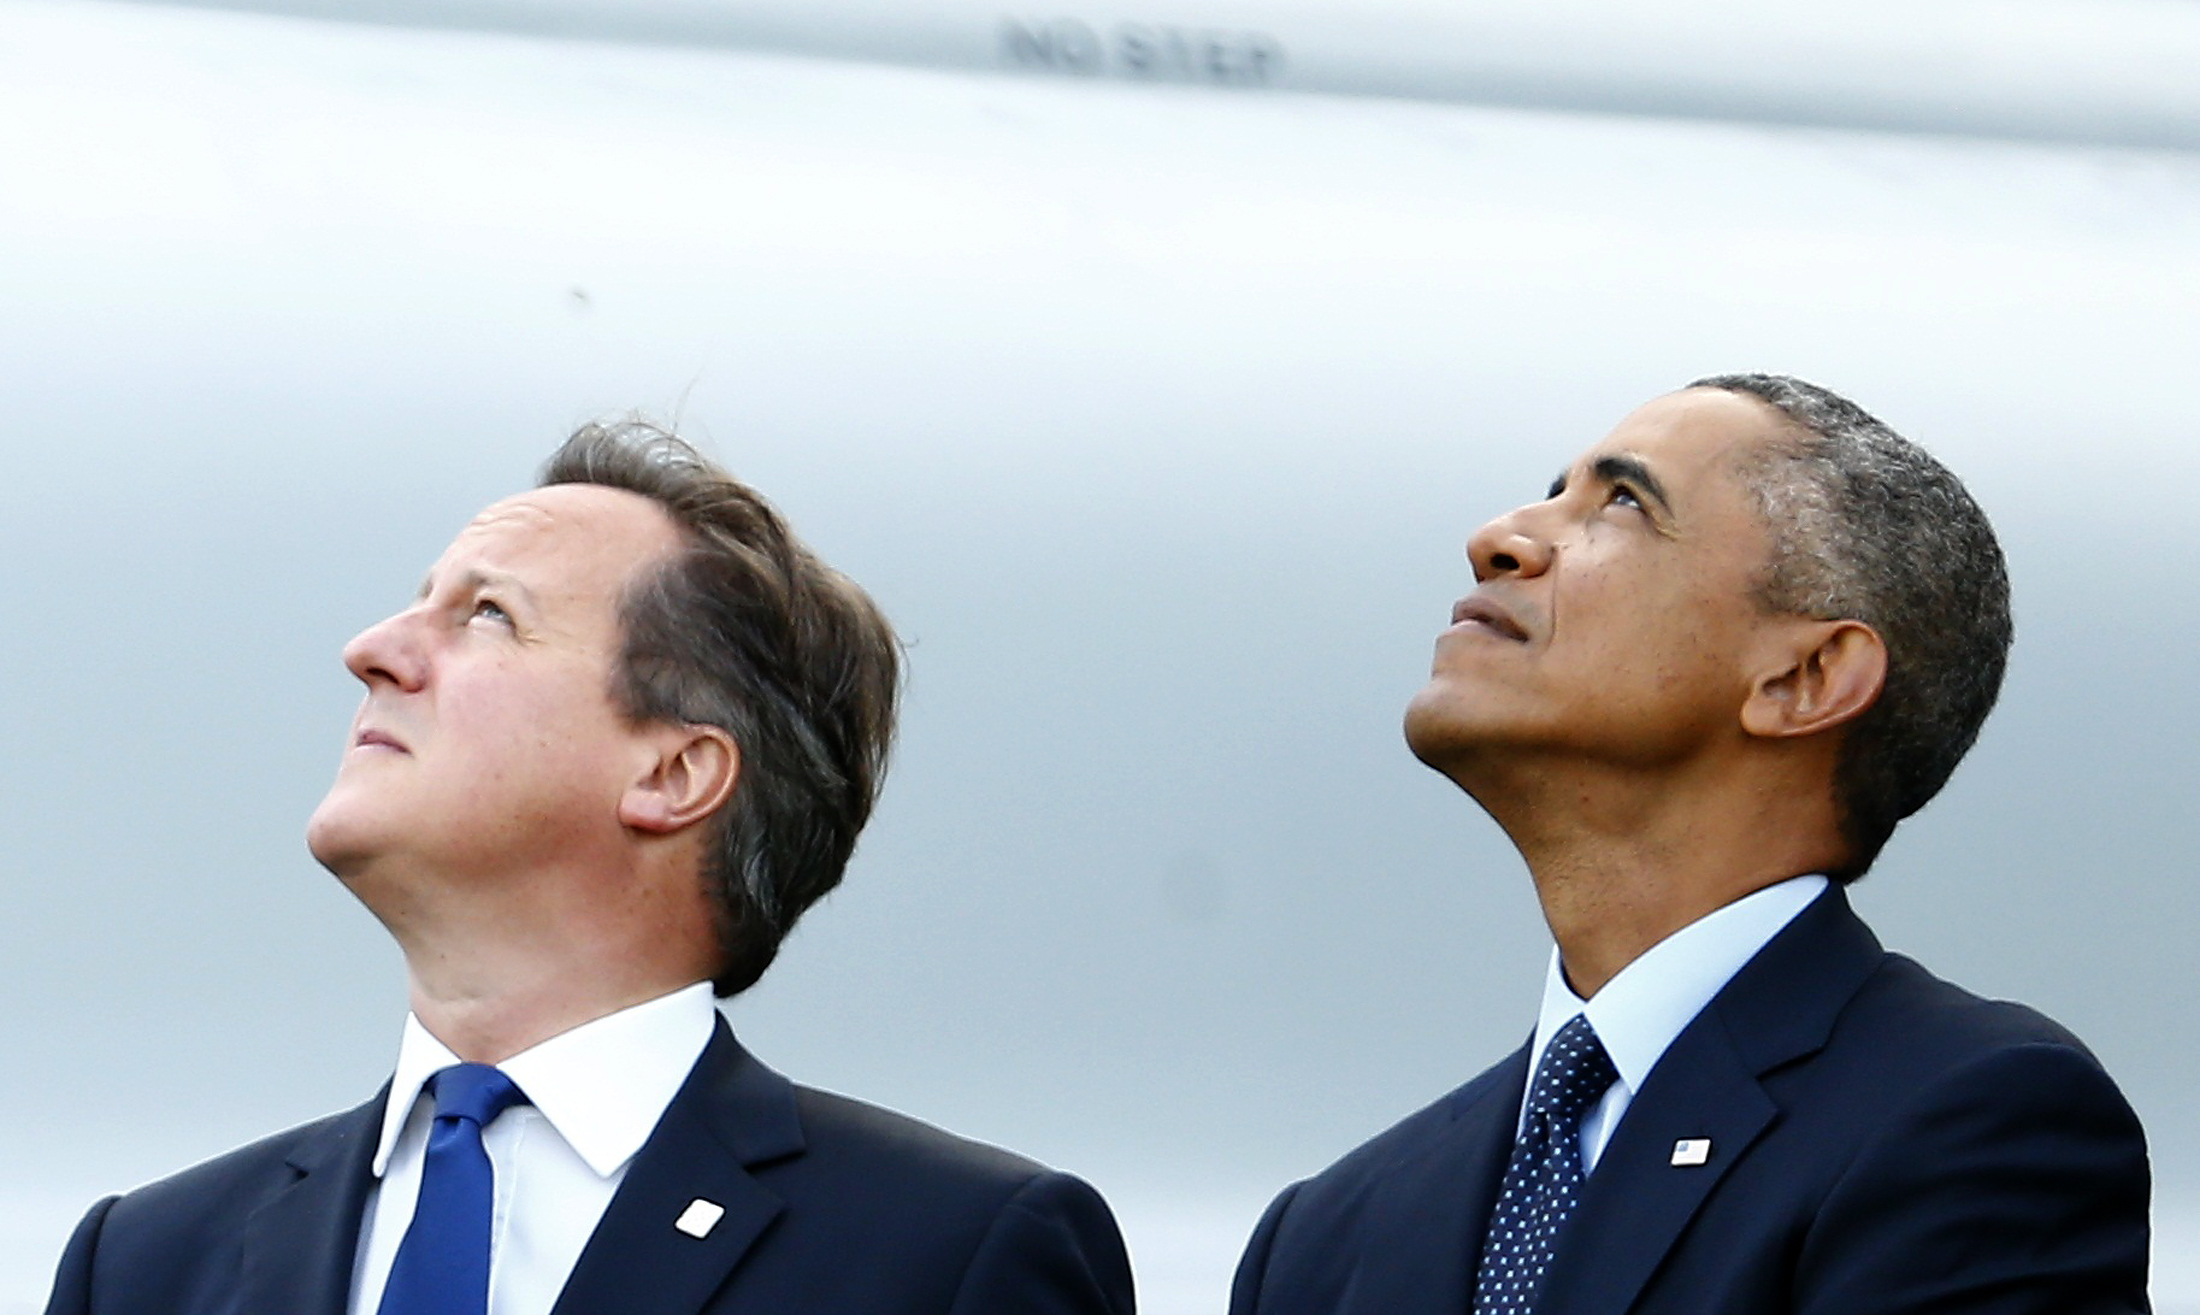 U.K. Prime Minister David Cameron, left, and U.S. President Barack Obama watch a flypast by the Red Arrows during the NATO summit in Wales on Sept. 5, 2014